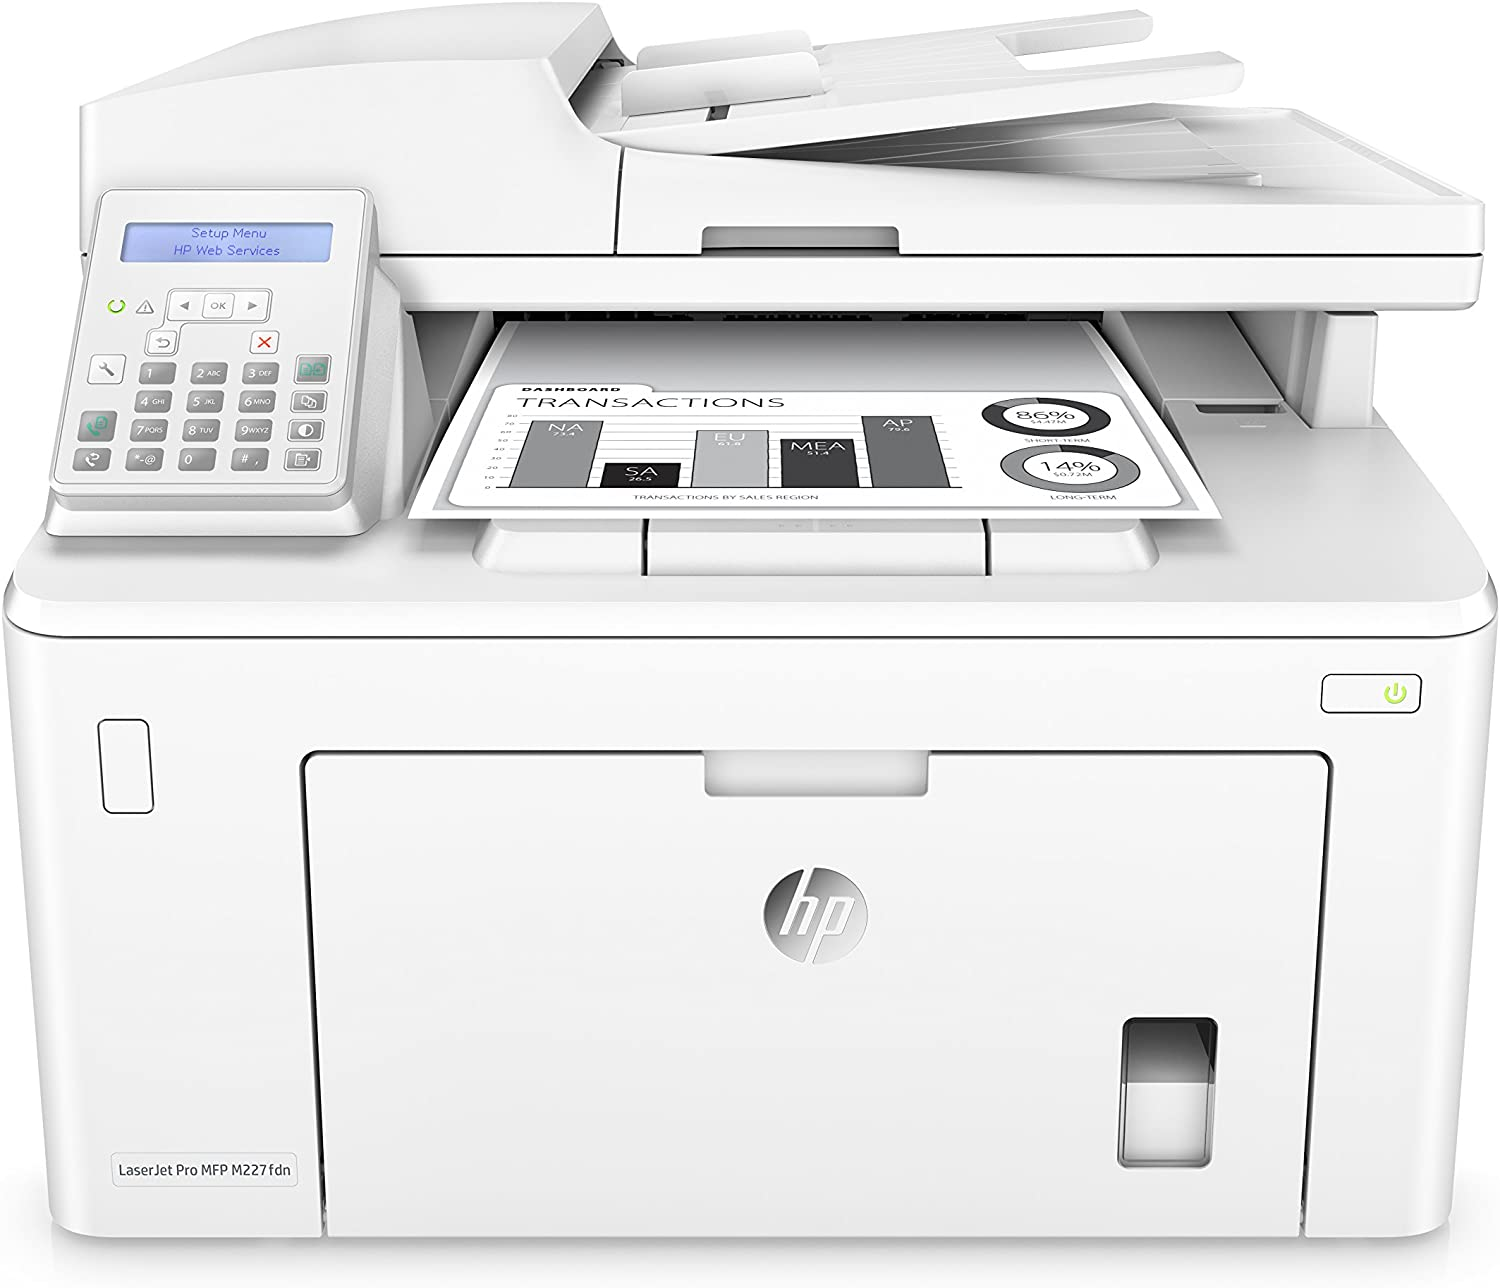 HP LaserJet Pro M227fdn All in One Laser Printer with Print Security, DHgate Dash Replenishment ready (G3Q79A),White,Normal